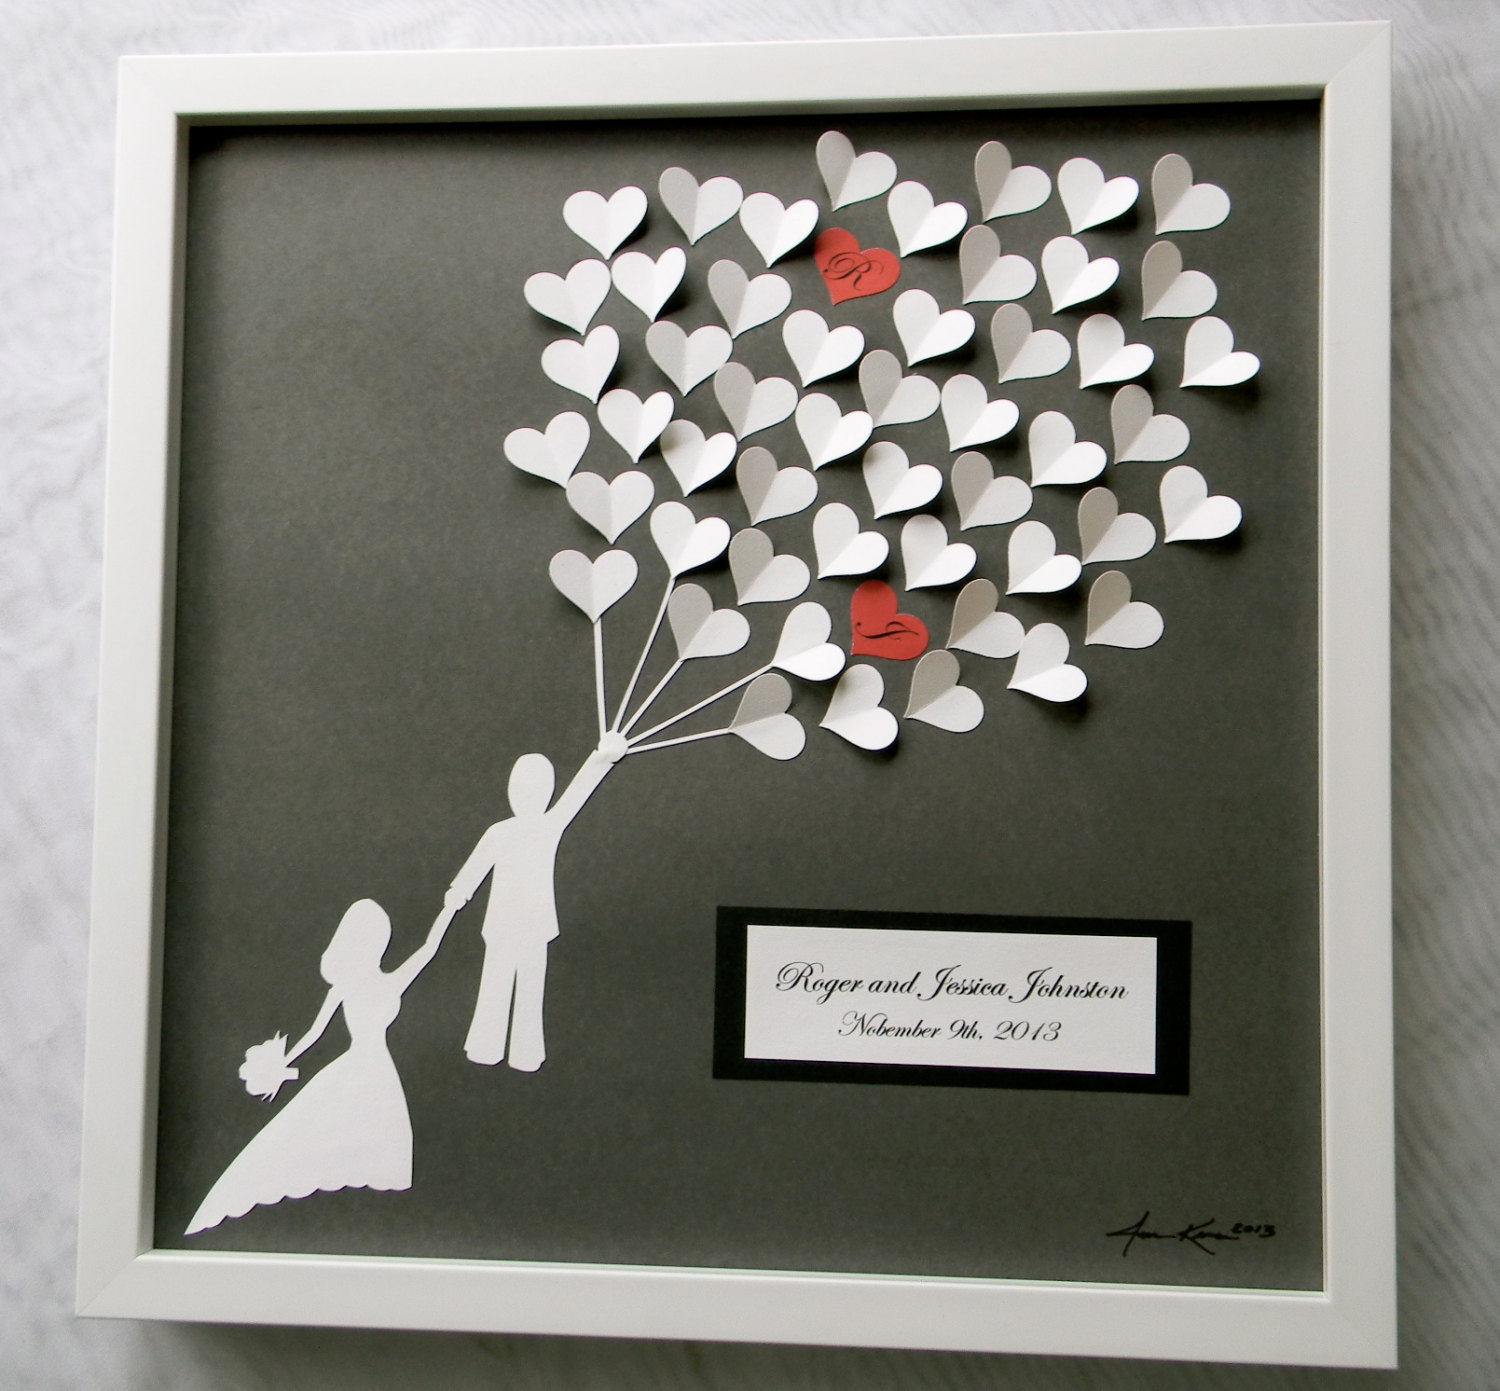 Personalised Wedding Gift Bride : 25 INETRESTING THANK YOU WEDDING GIFT FOR THE GUESTS??.